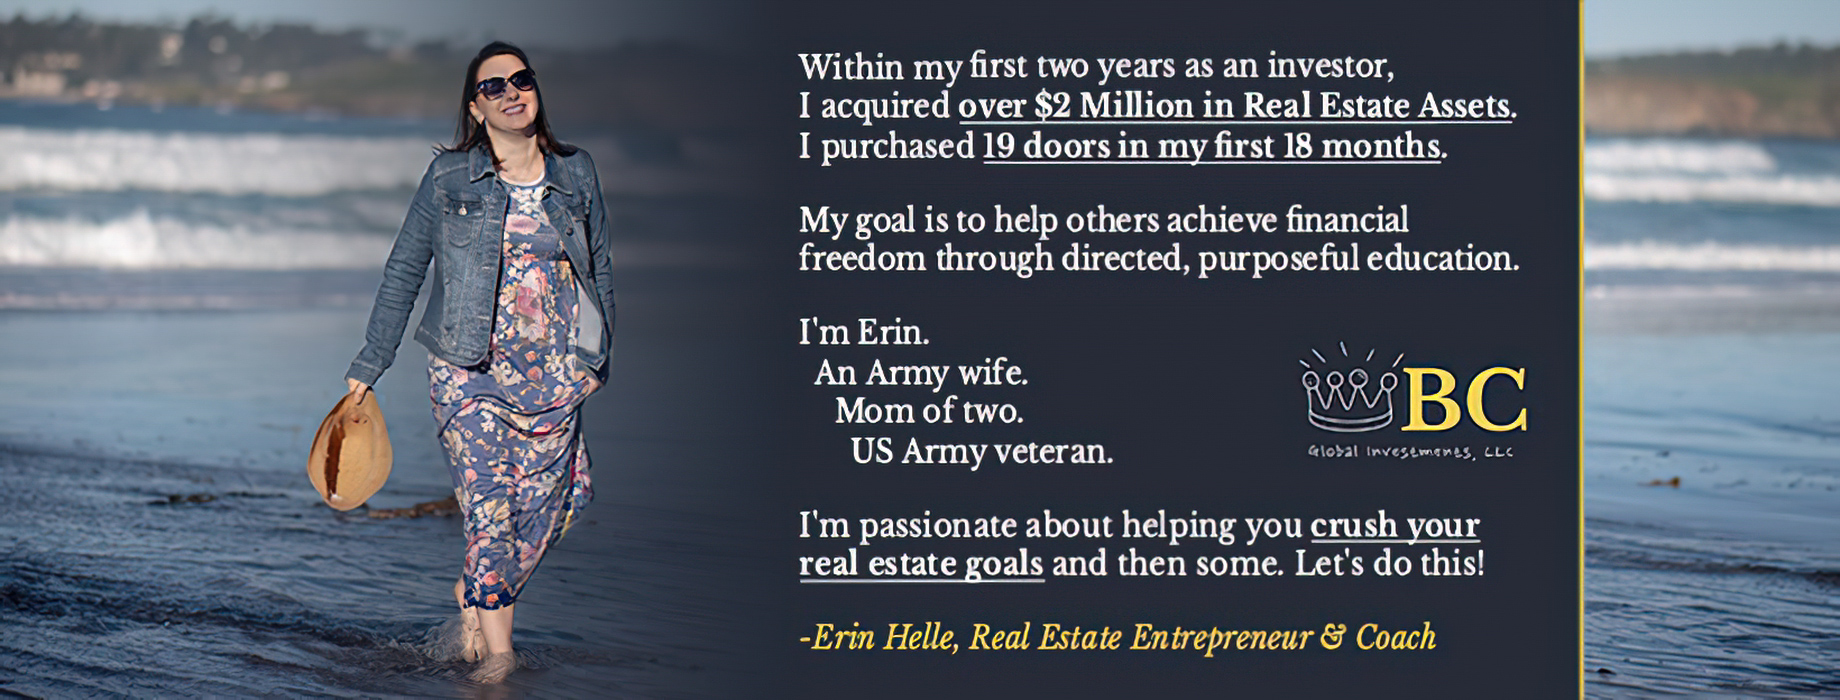 Erin Helle - Founder of BC Global Investments